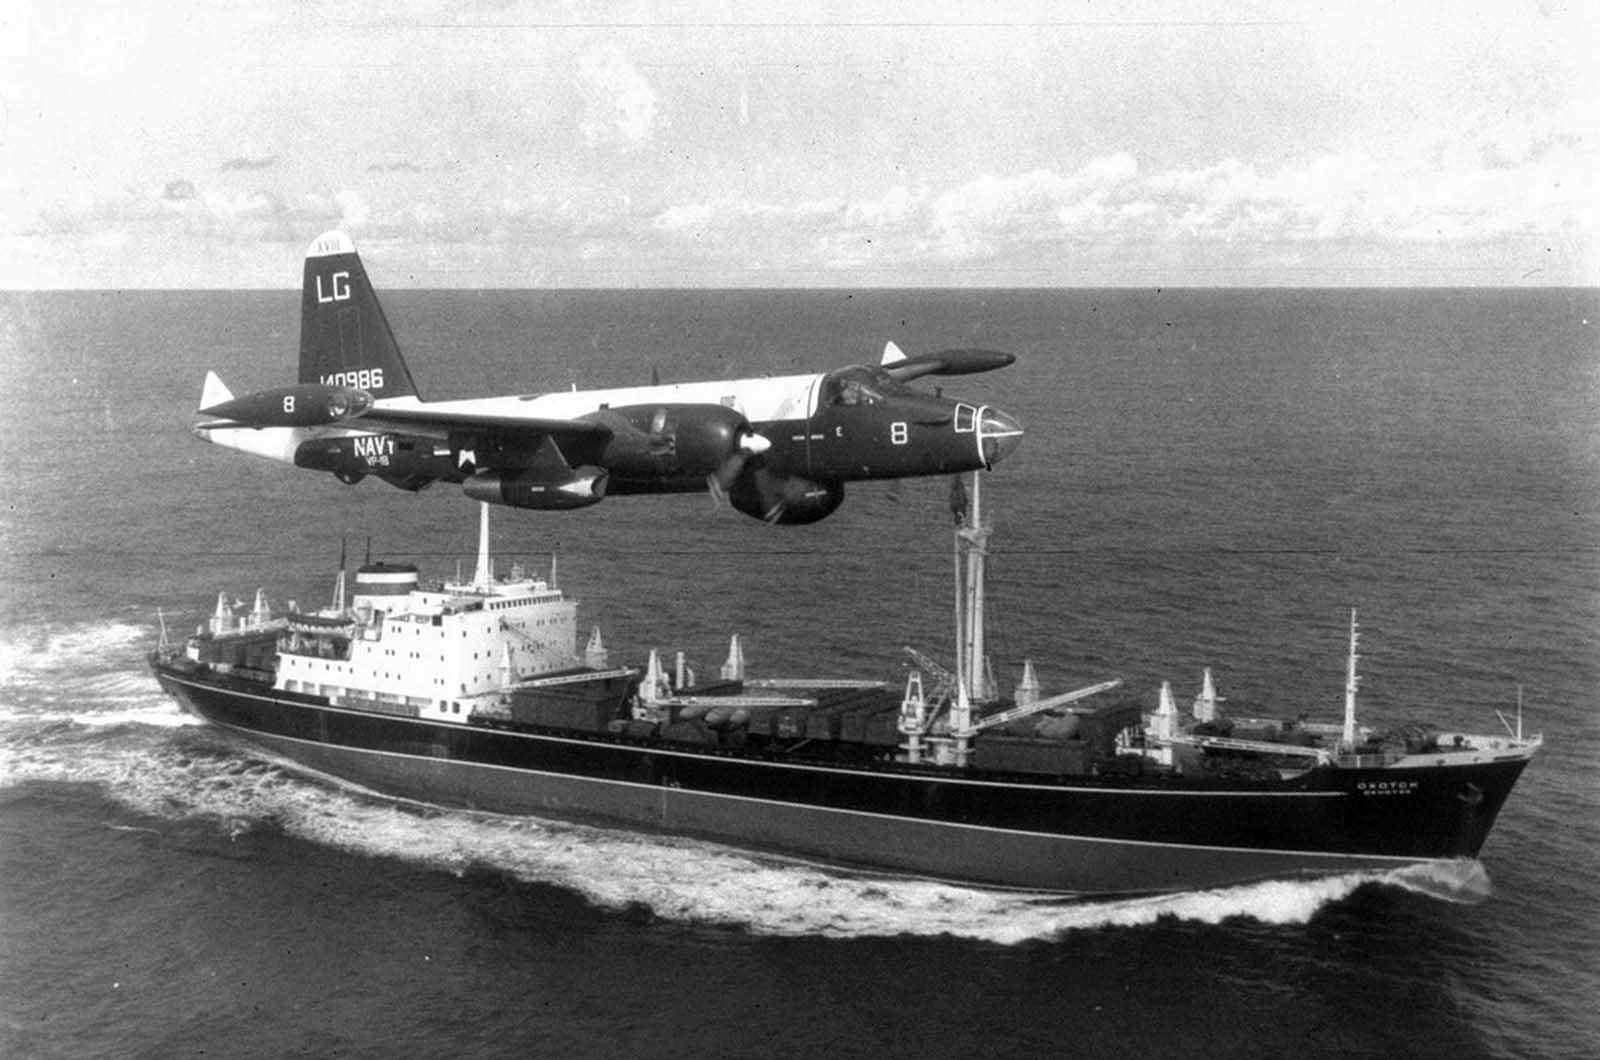 A P2V Neptune U.S. patrol plane flies over a Soviet freighter during the Cuban missile crisis in 1962.